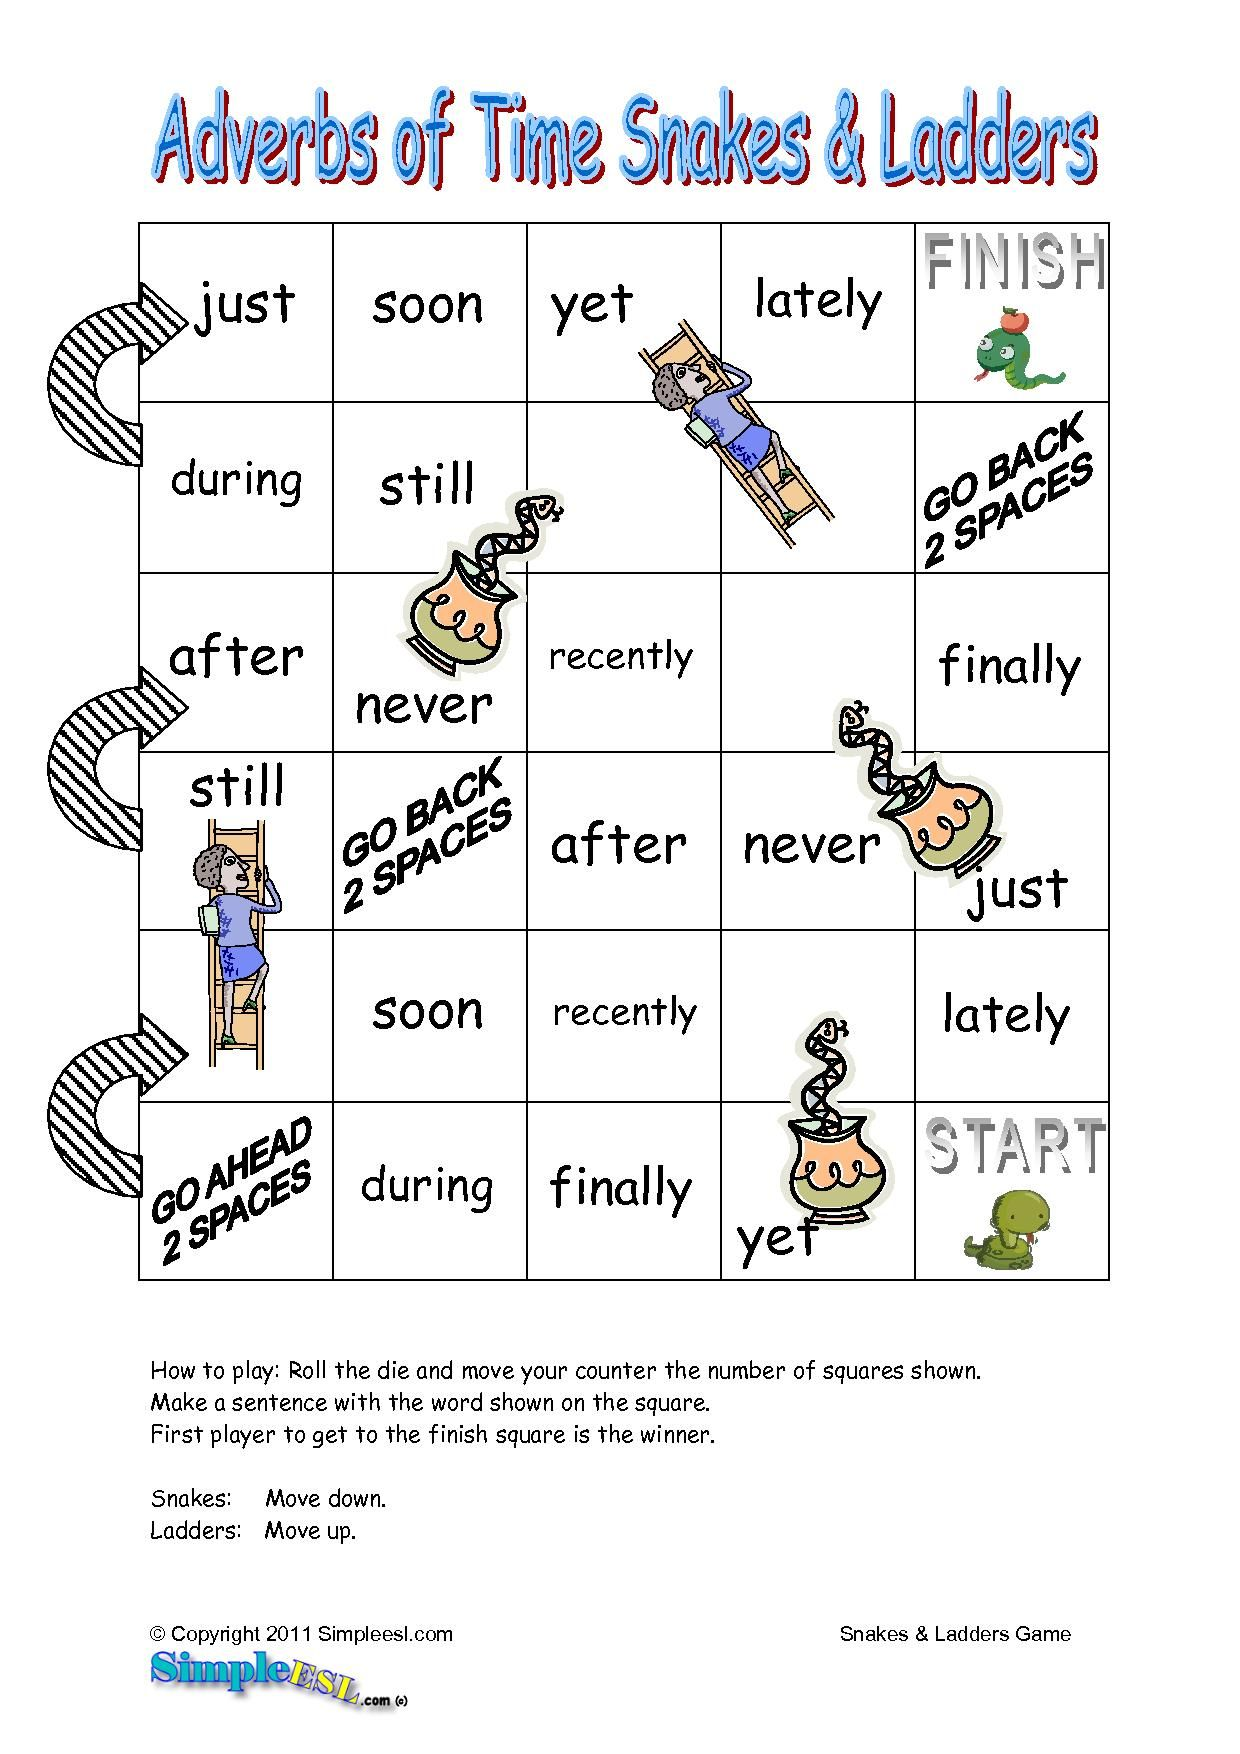 Adverbs Of Time Snakes And Ladders A Chutes And Ladders